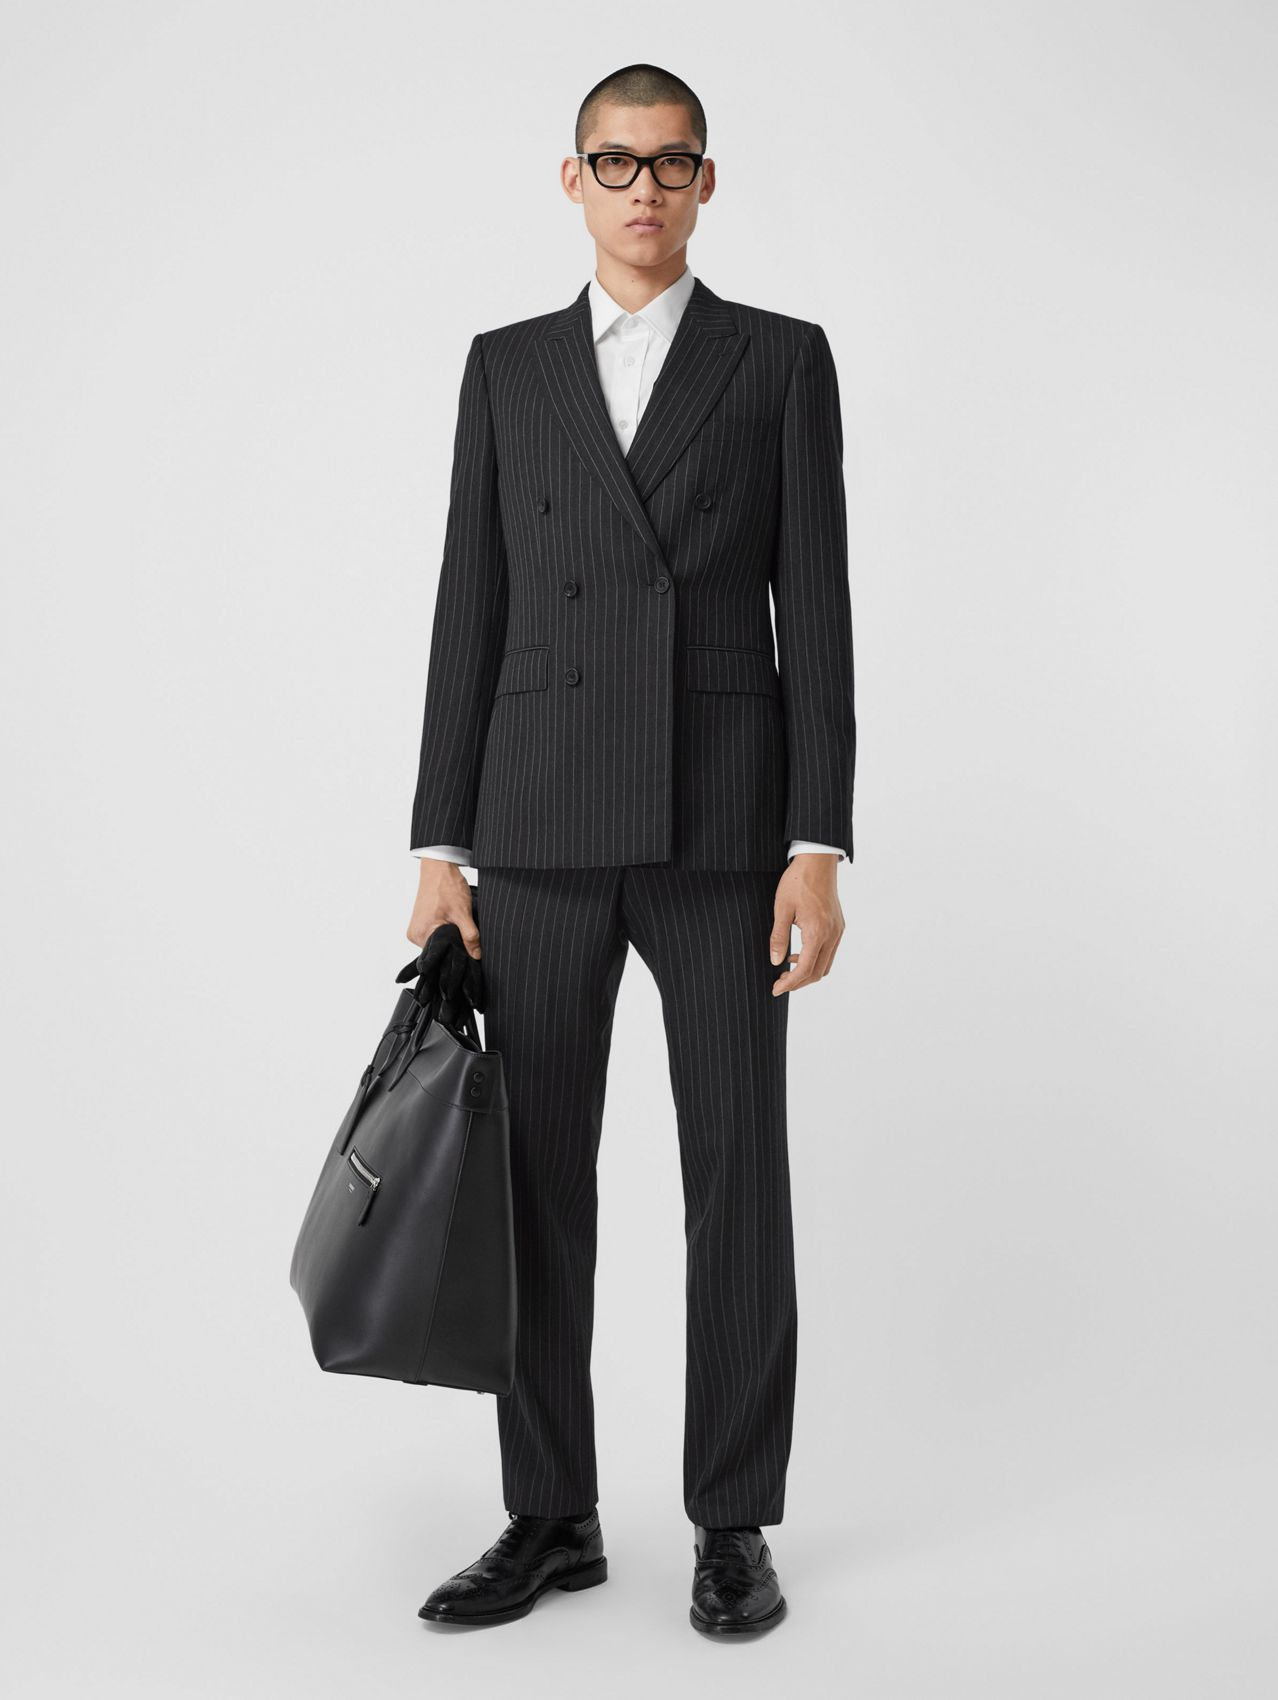 English Fit Pinstriped Wool Double-breasted Suit (Charcoal)